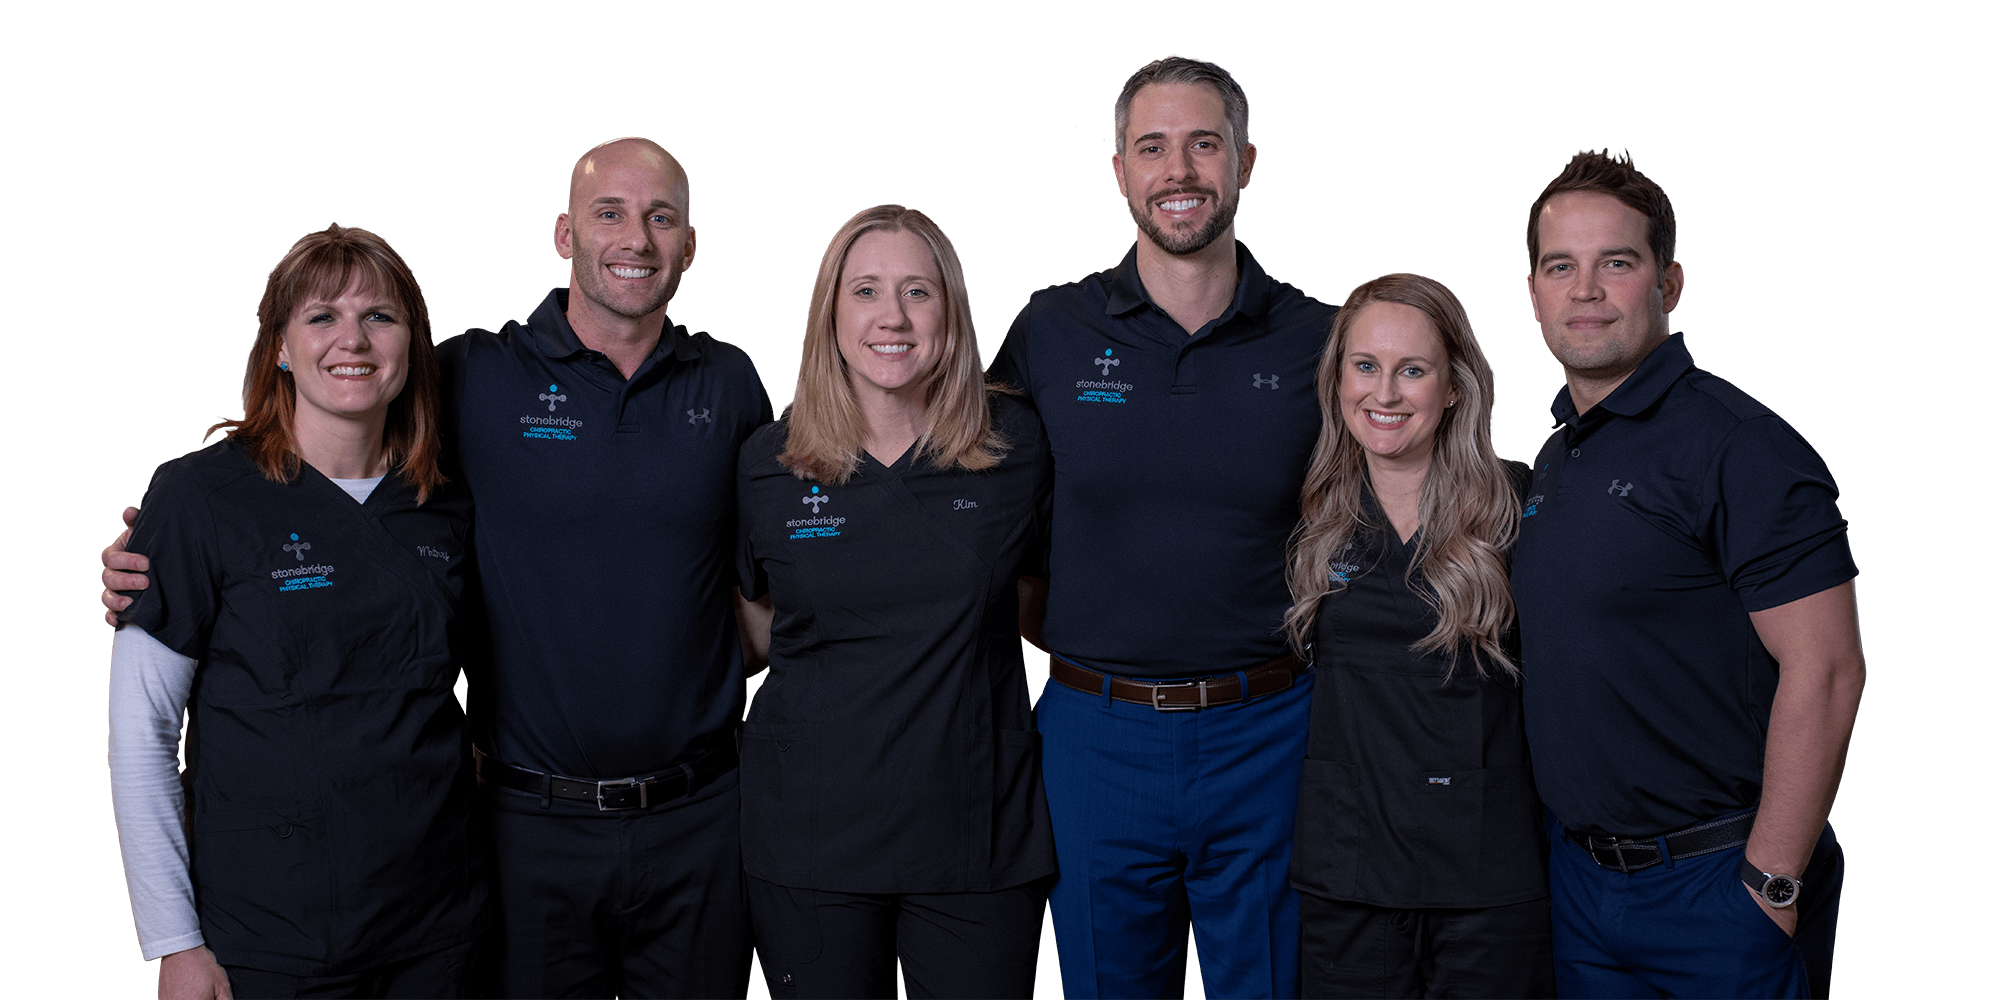 Chiropractor The Colony 000000TX Dr Andrew Oteo and Team